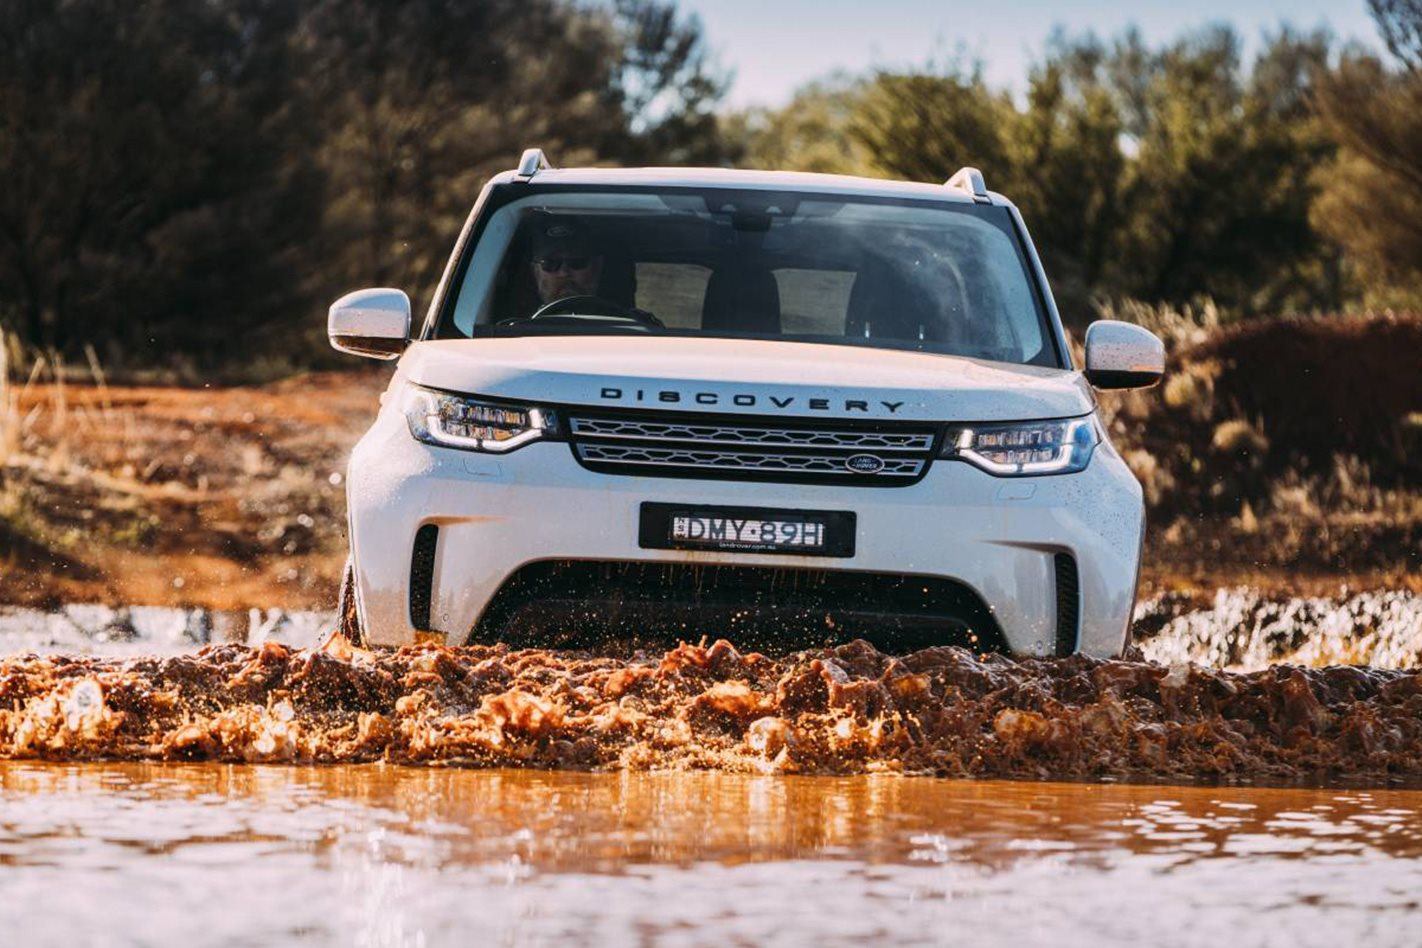 2017 Land Rover Discovery offroad